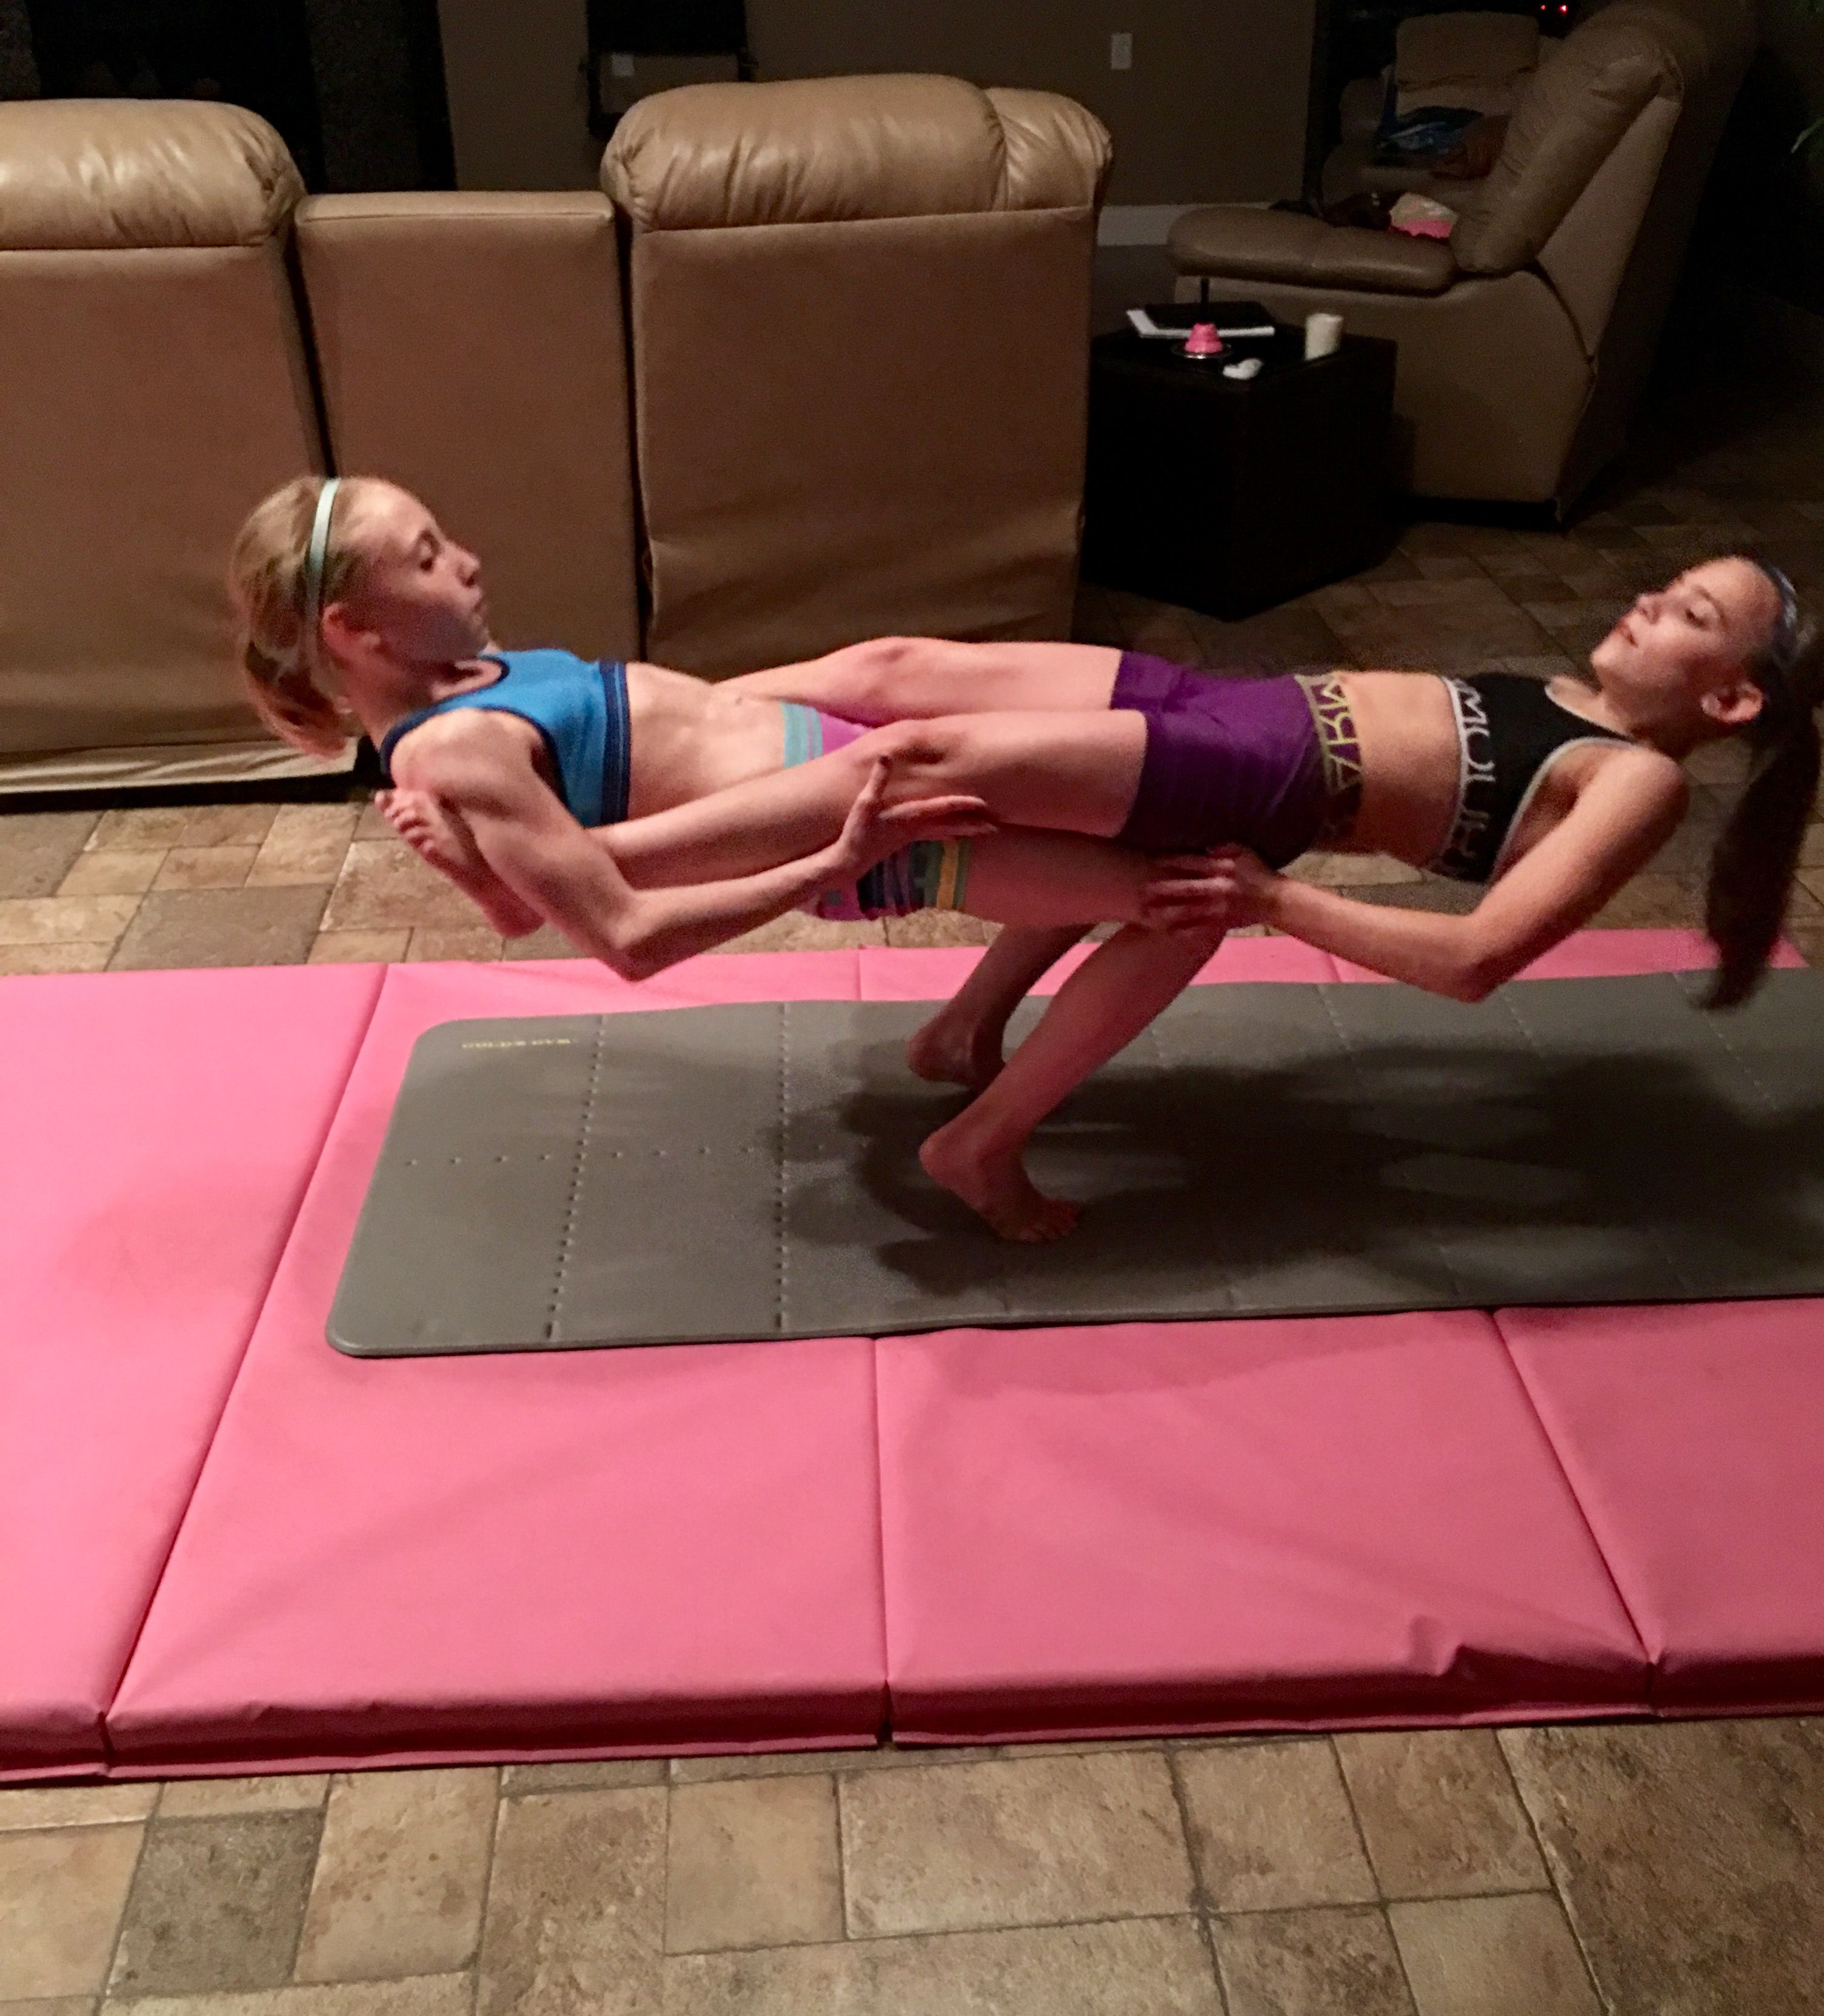 Pin By Giovanna Silveira Pimentel On Yoga Poses For Two Two People Yoga Poses Acro Yoga Poses Yoga Poses For Two